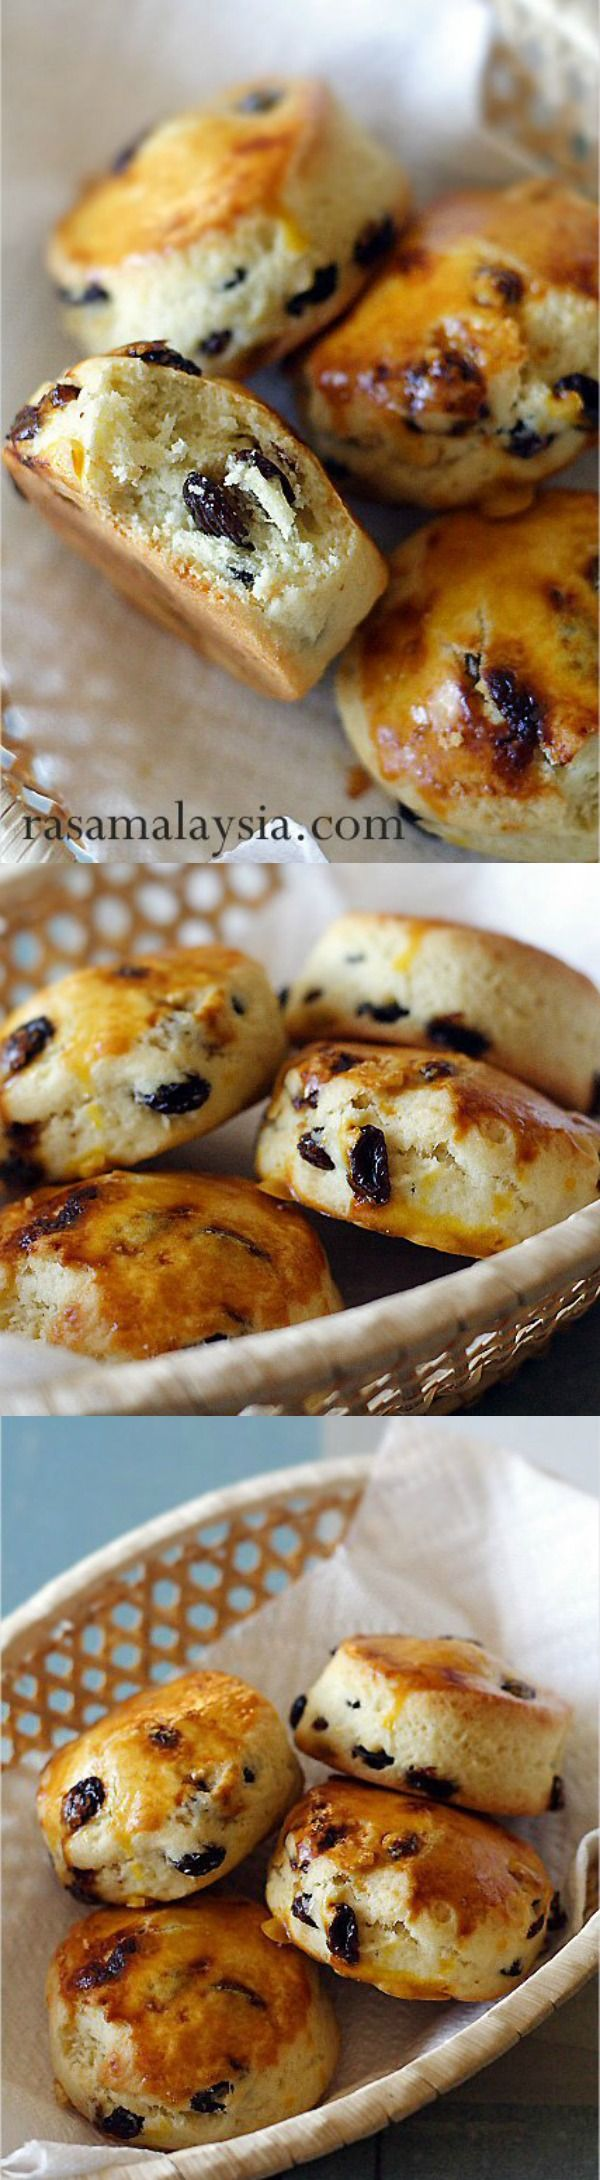 Breakfast for mom - Raisin Scones - crumbly and buttery scones loaded with raisins. So easy and great for breakfast or tea | rasamalaysia.com